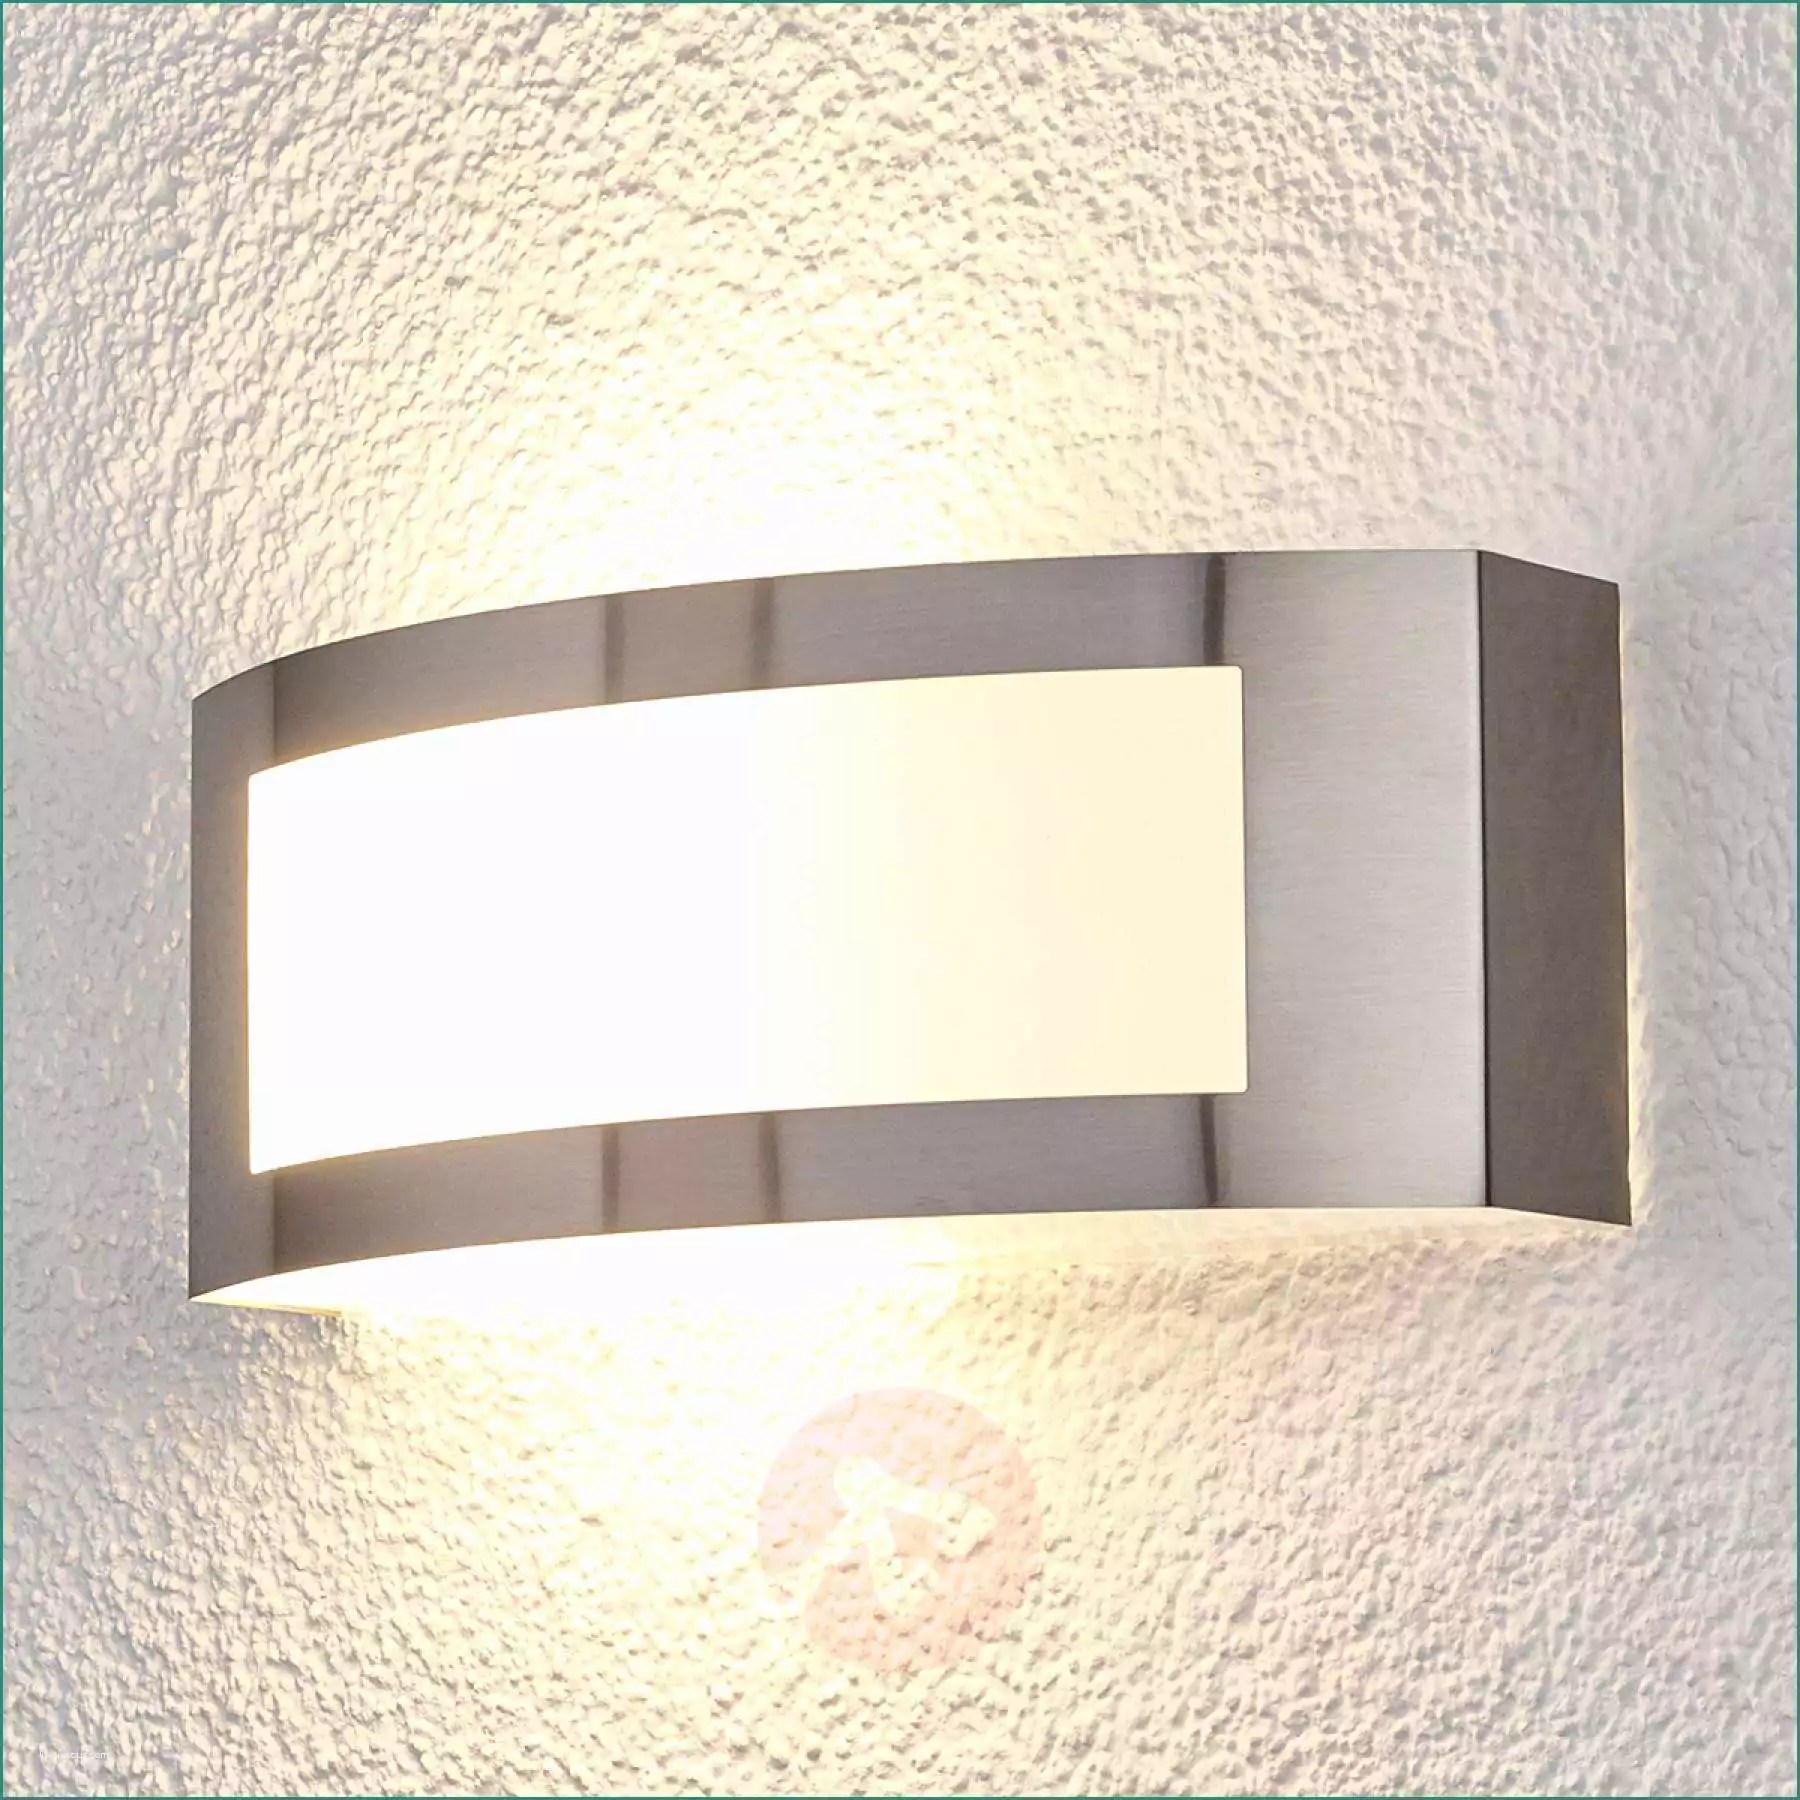 Applique Moderne Led Leroy Merlin Novocom Top